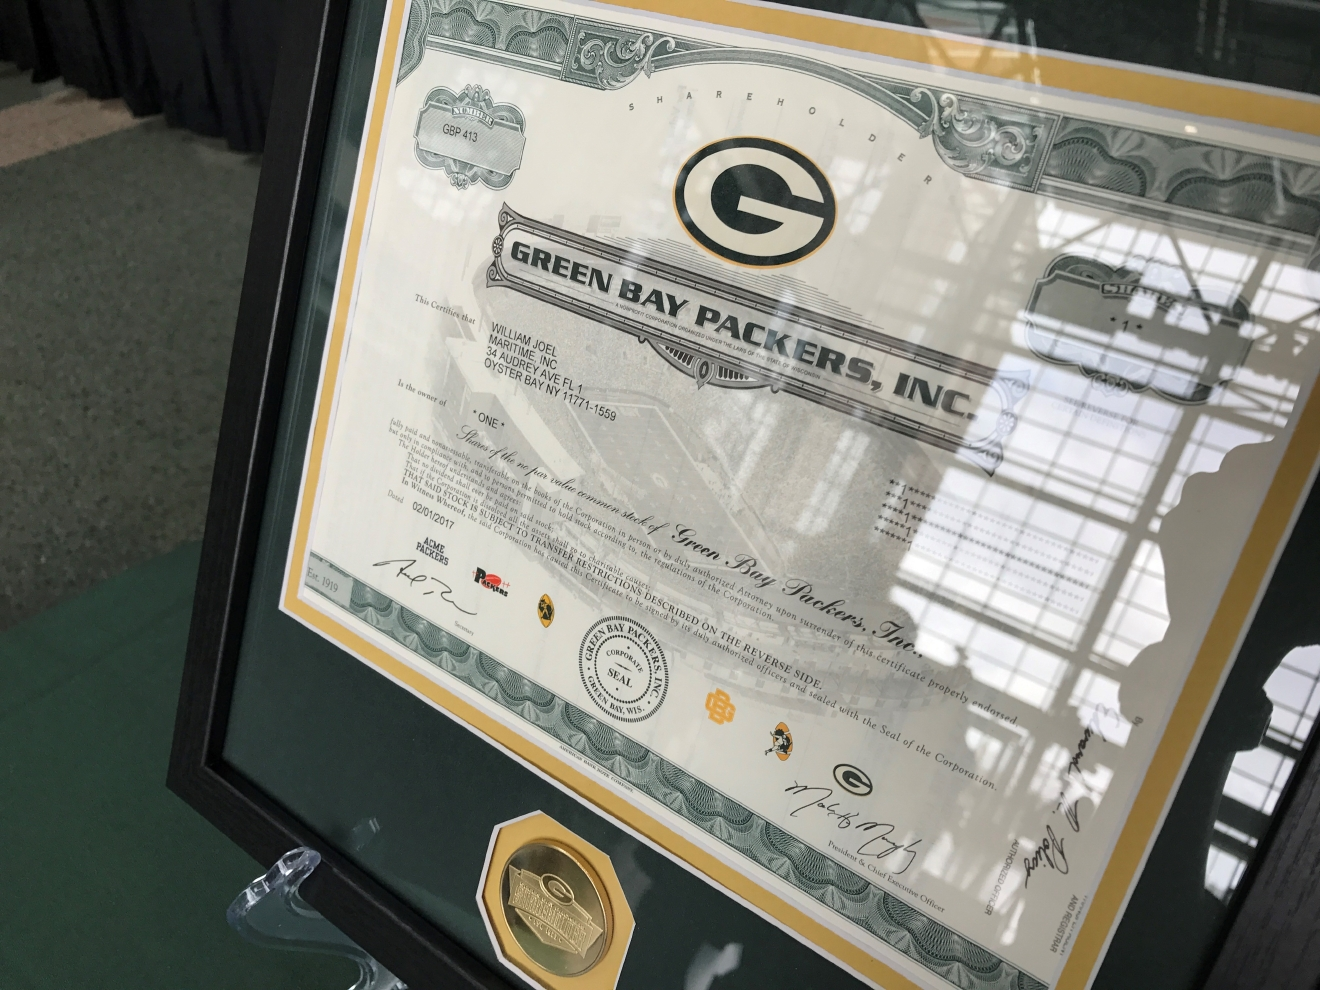 Billy Joel's shareholder certificate. The Packers will present this to him before his performance in Green Bay. (WLUK/Gabrielle Mays)